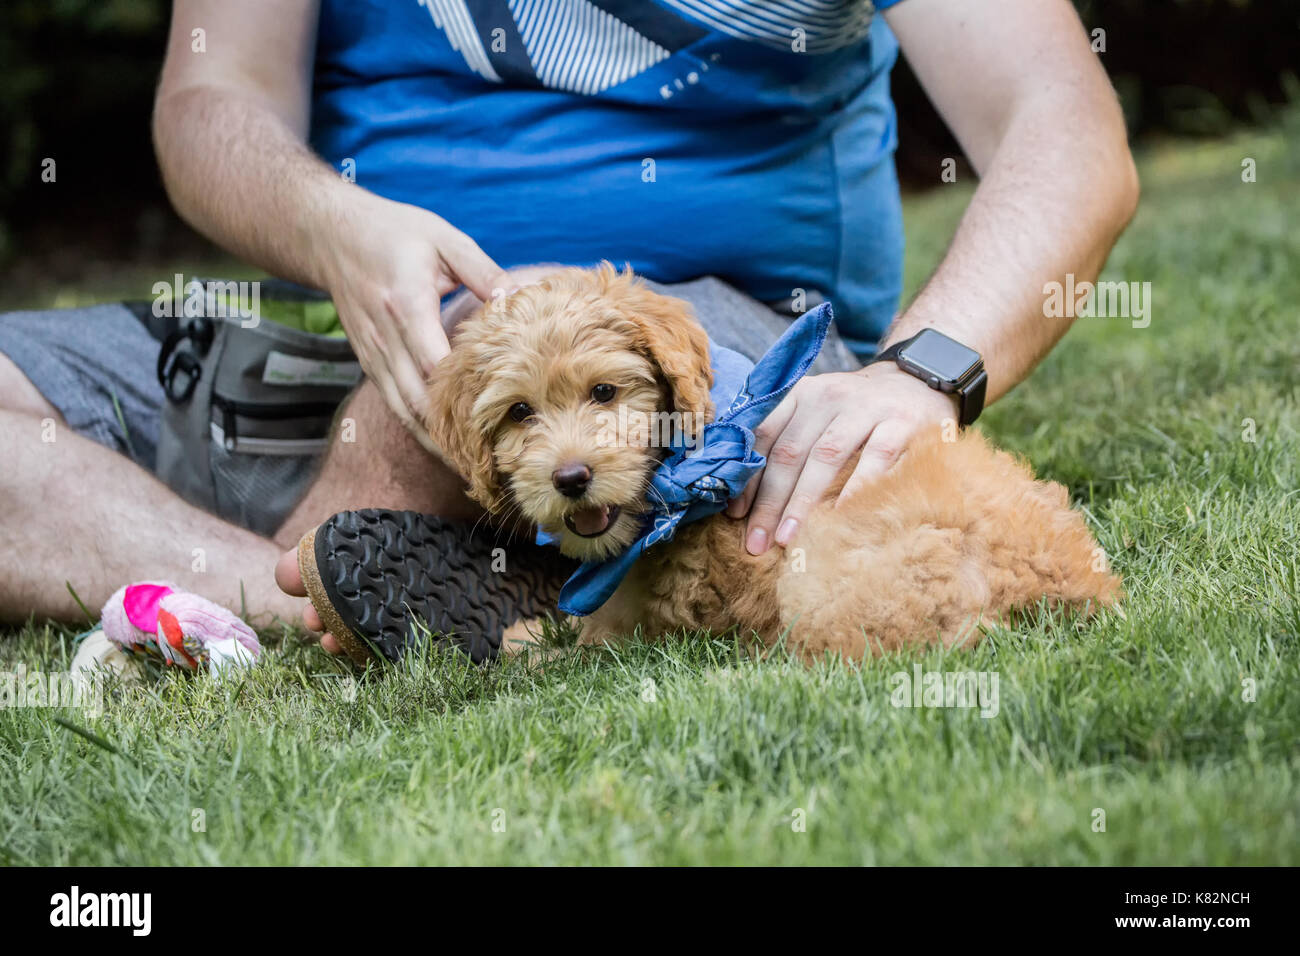 Eight week old Goldendoodle puppy 'Bella', wearing a neckerchief, taking a break from playing to sit by - Stock Image